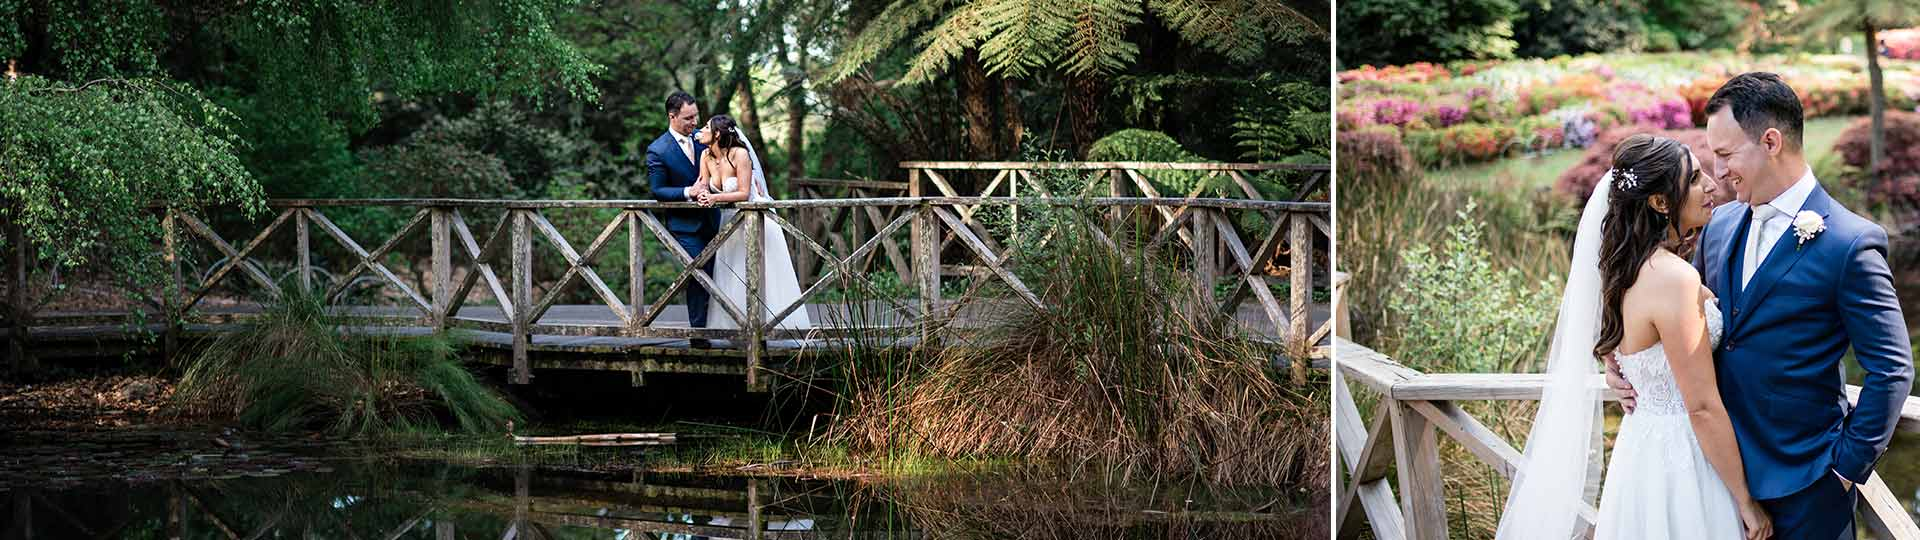 dandenong-ranges wedding-venues